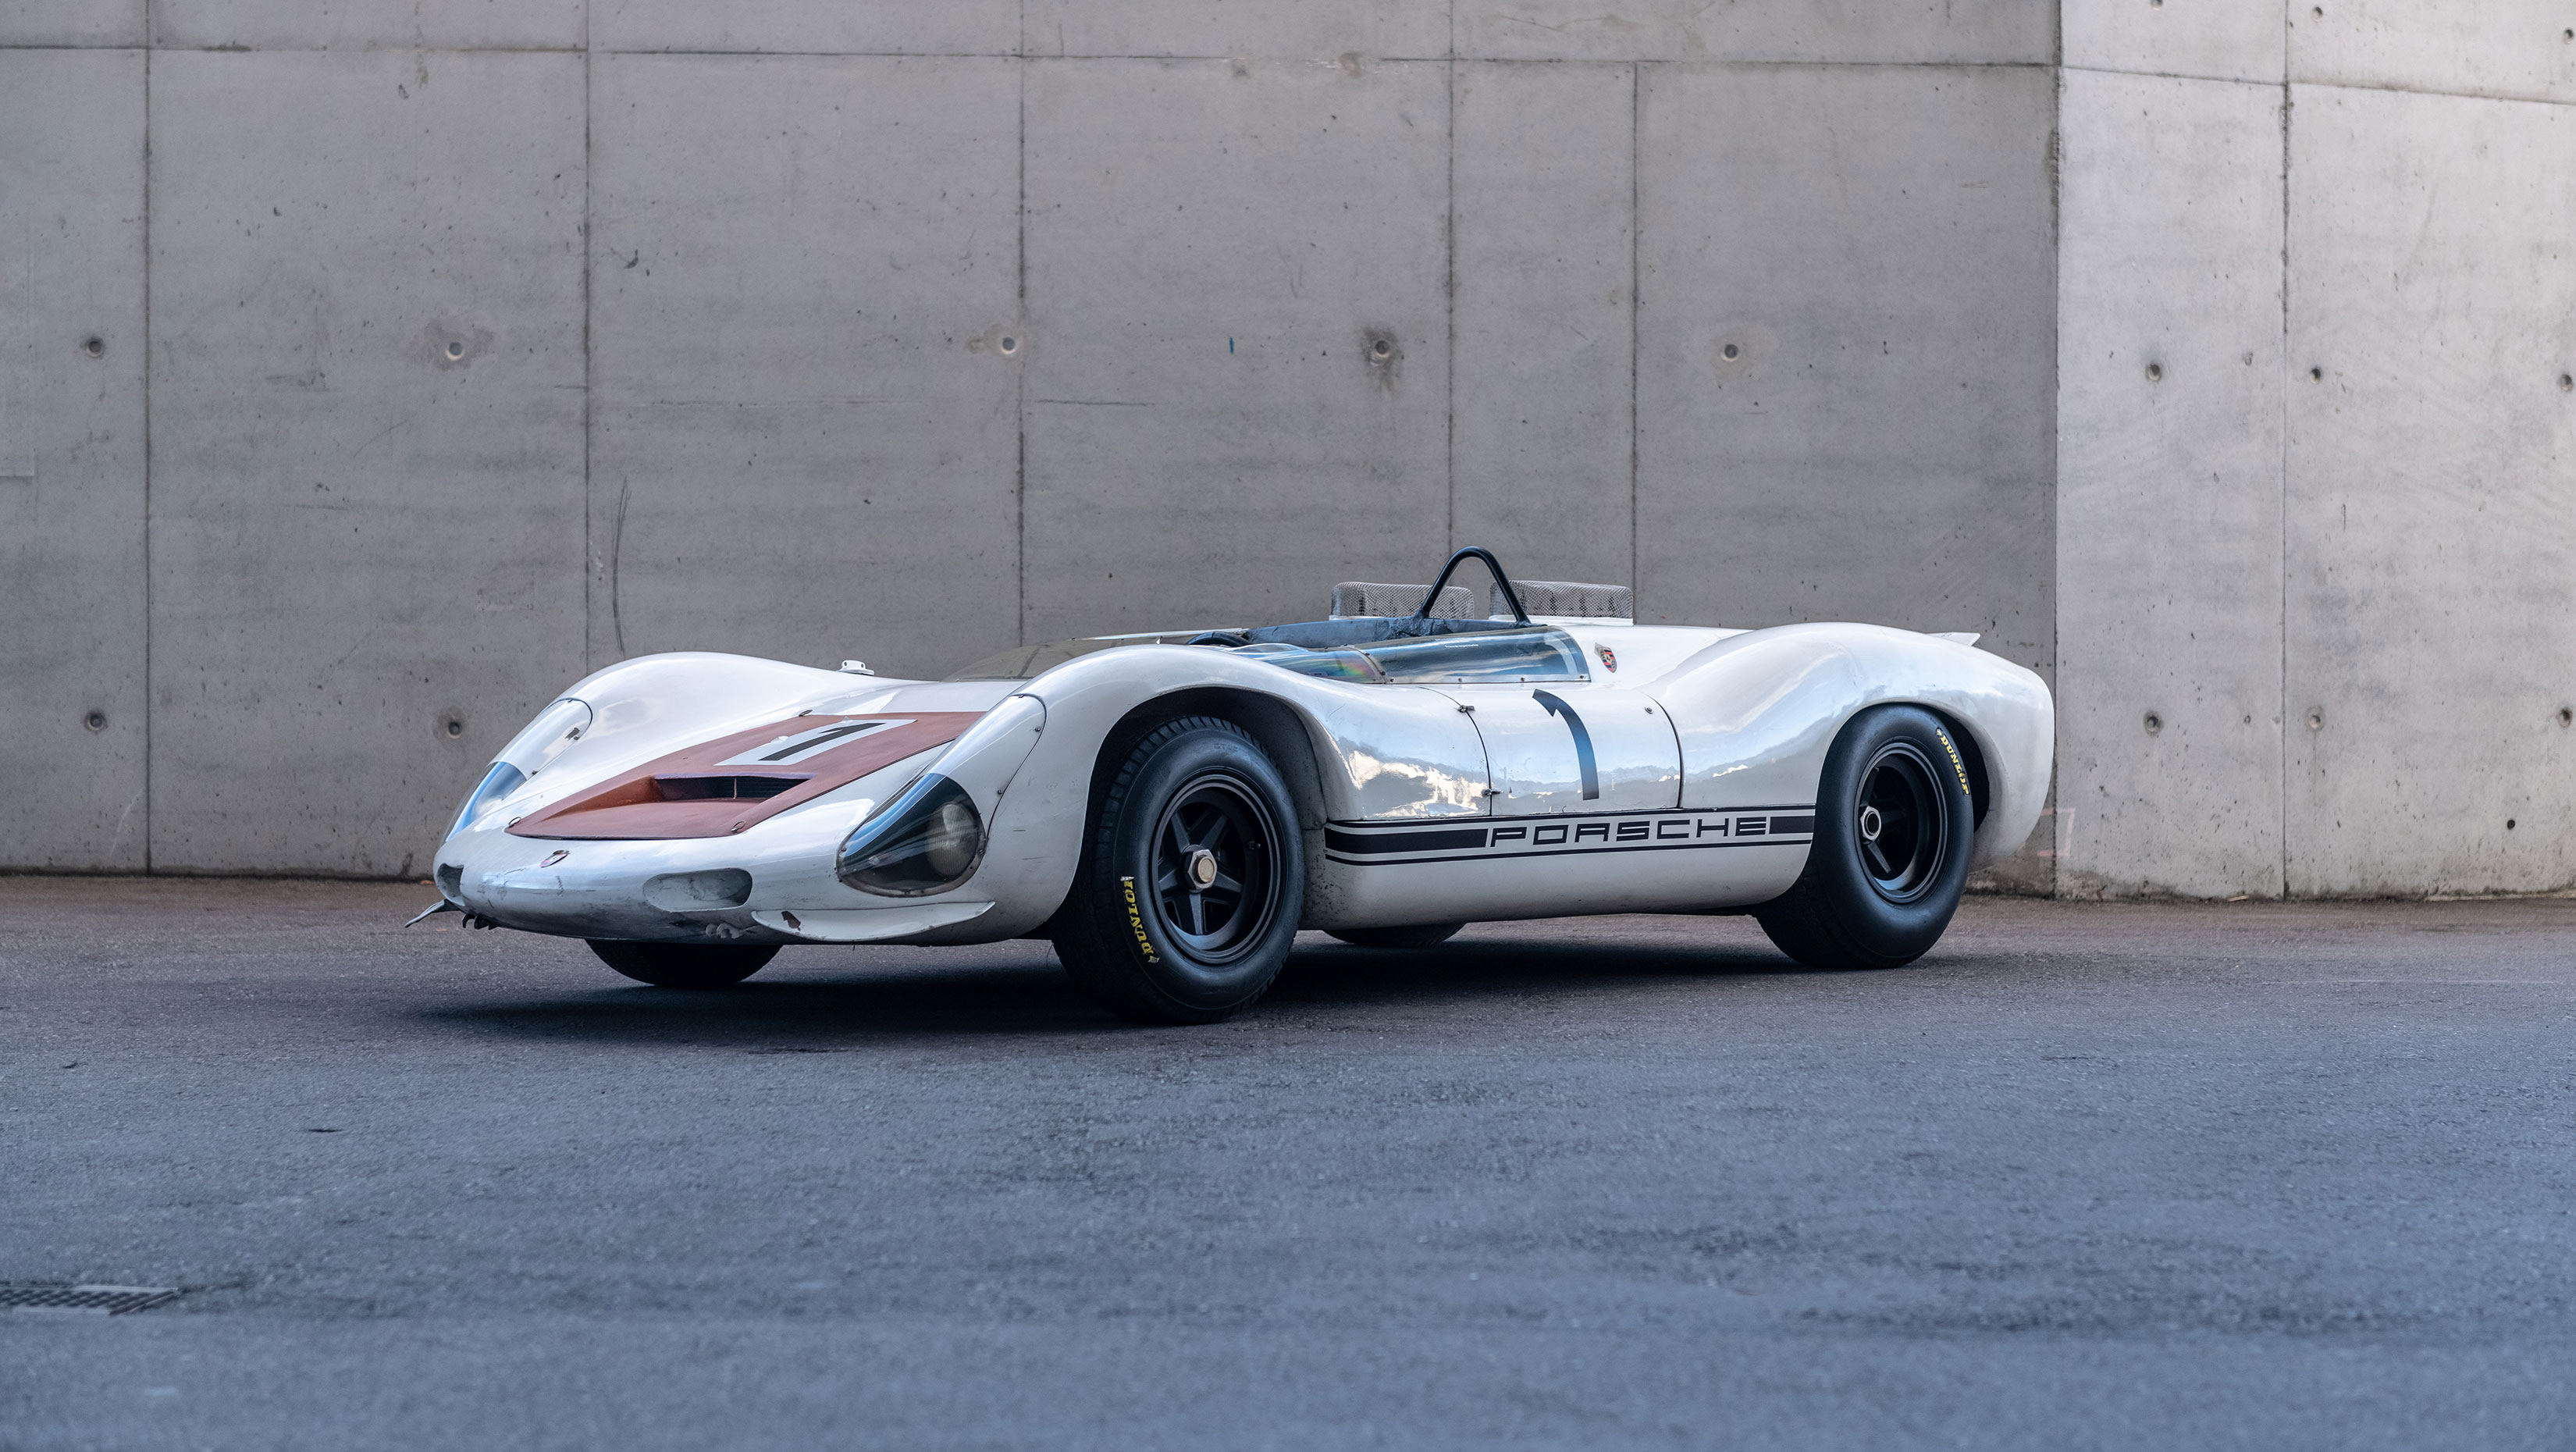 Porsche race car has been preserved since its final race in 1967